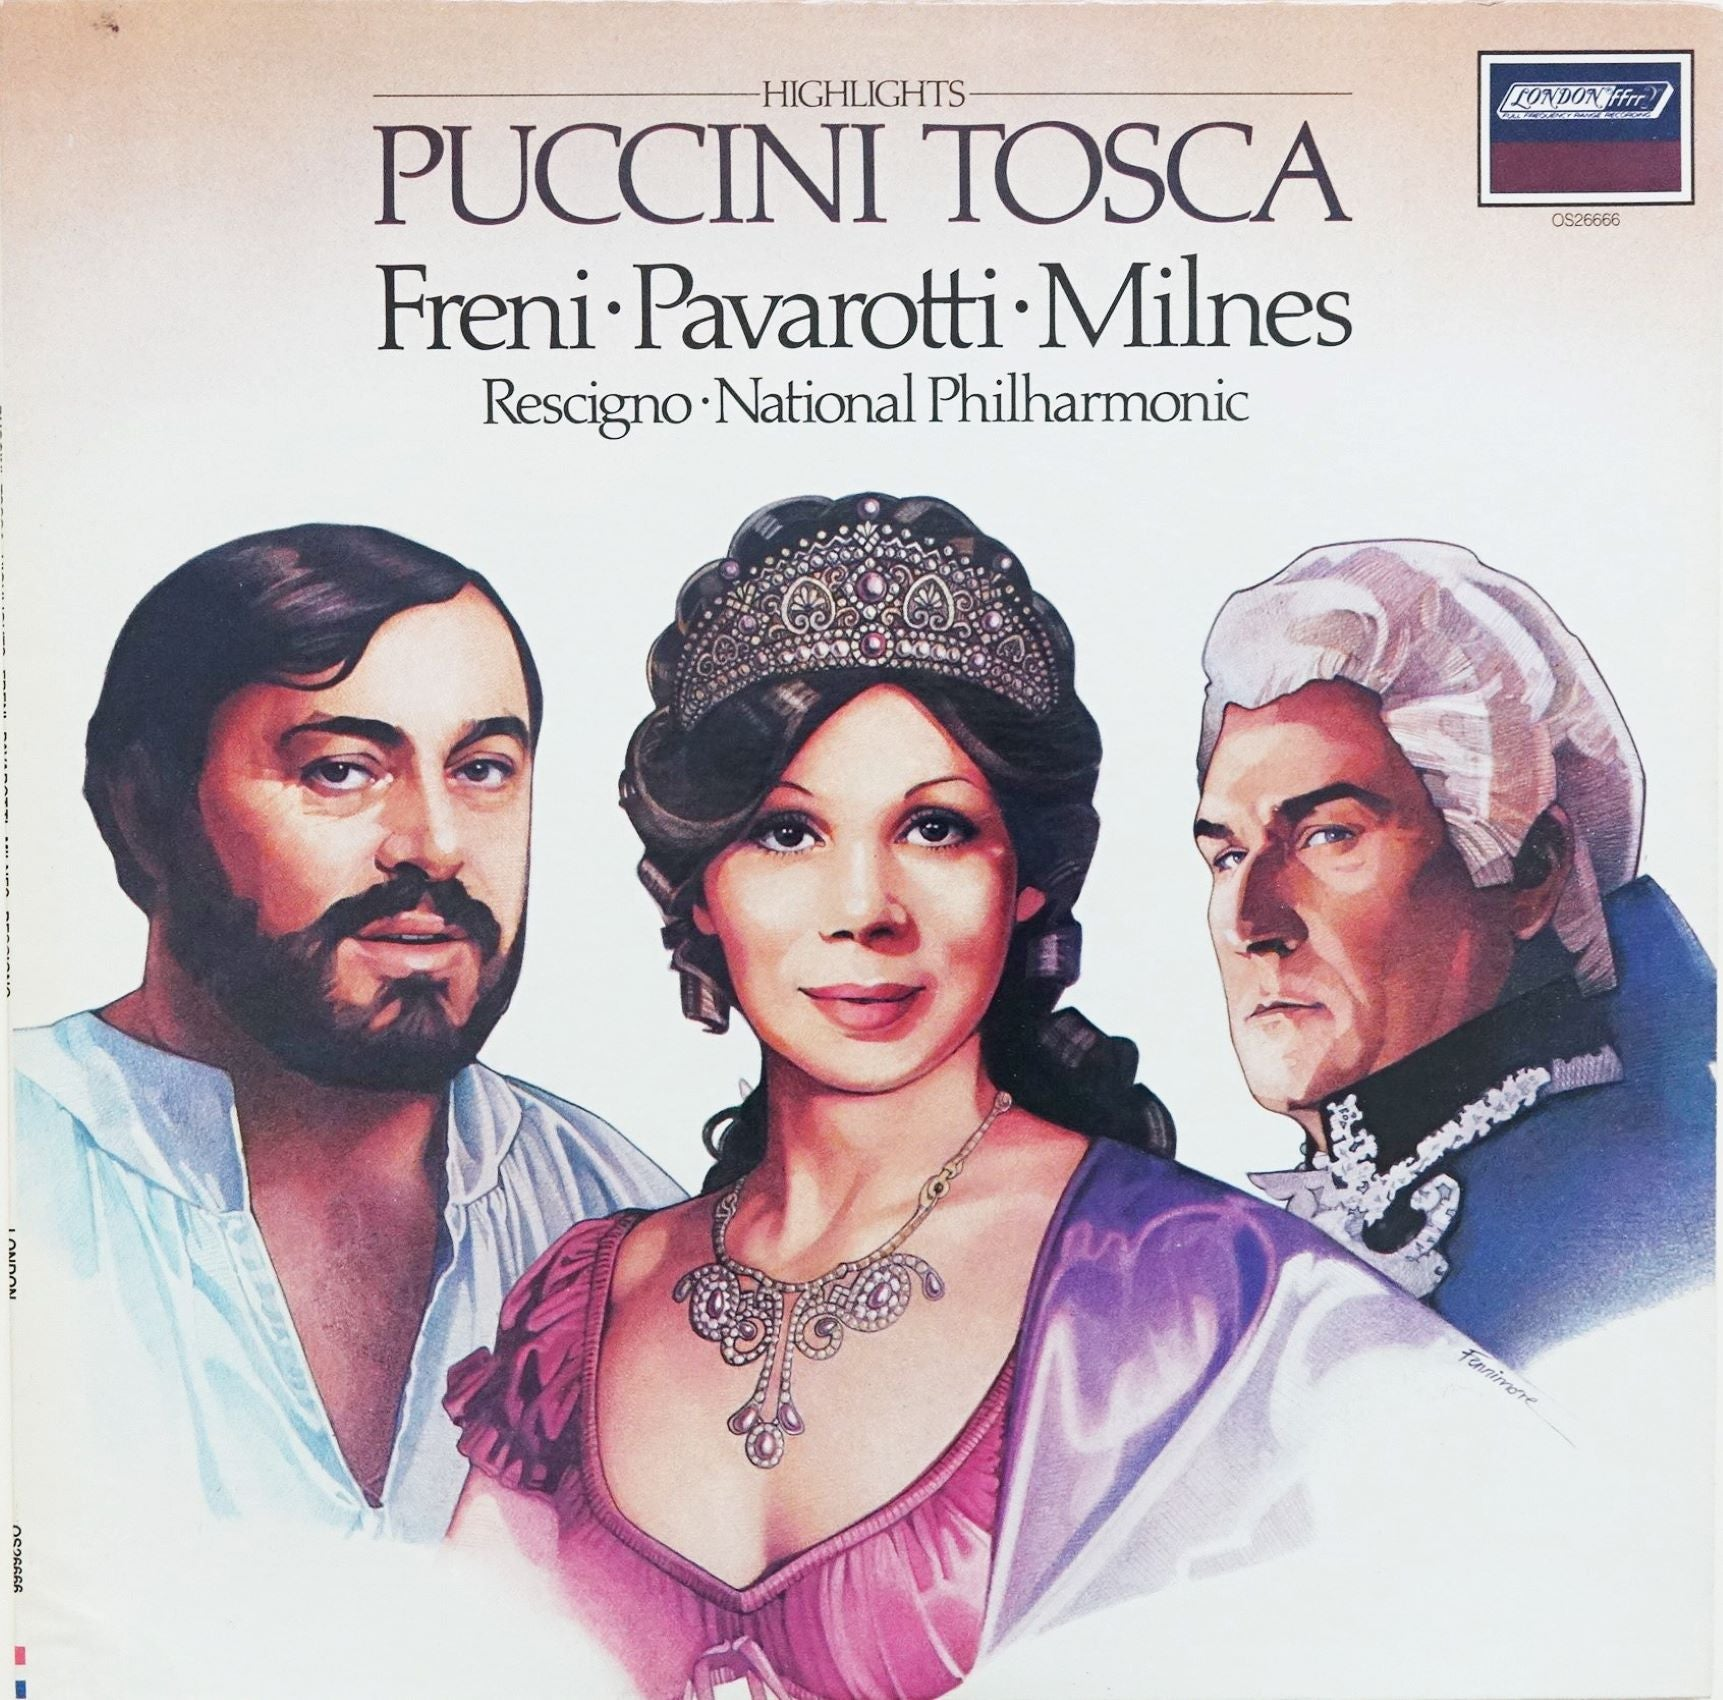 LON001: Highlights from Puccini's Tosca